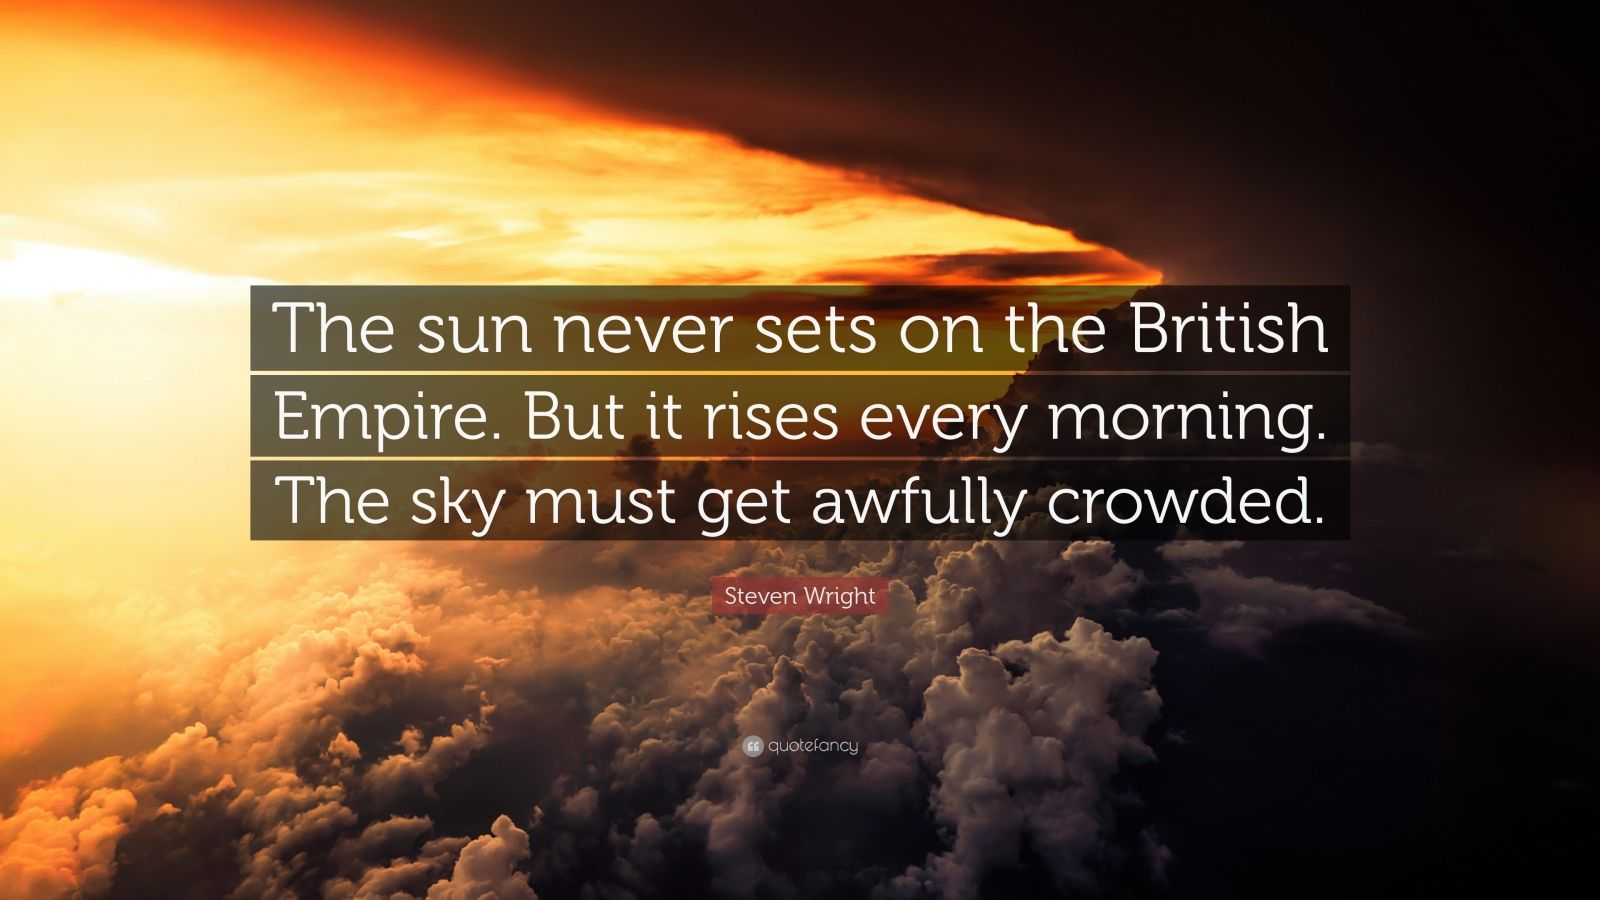 """Steven Wright Quote: """"The sun never sets on the British Empire. But it rises every morning. The sky must get awfully crowded."""""""